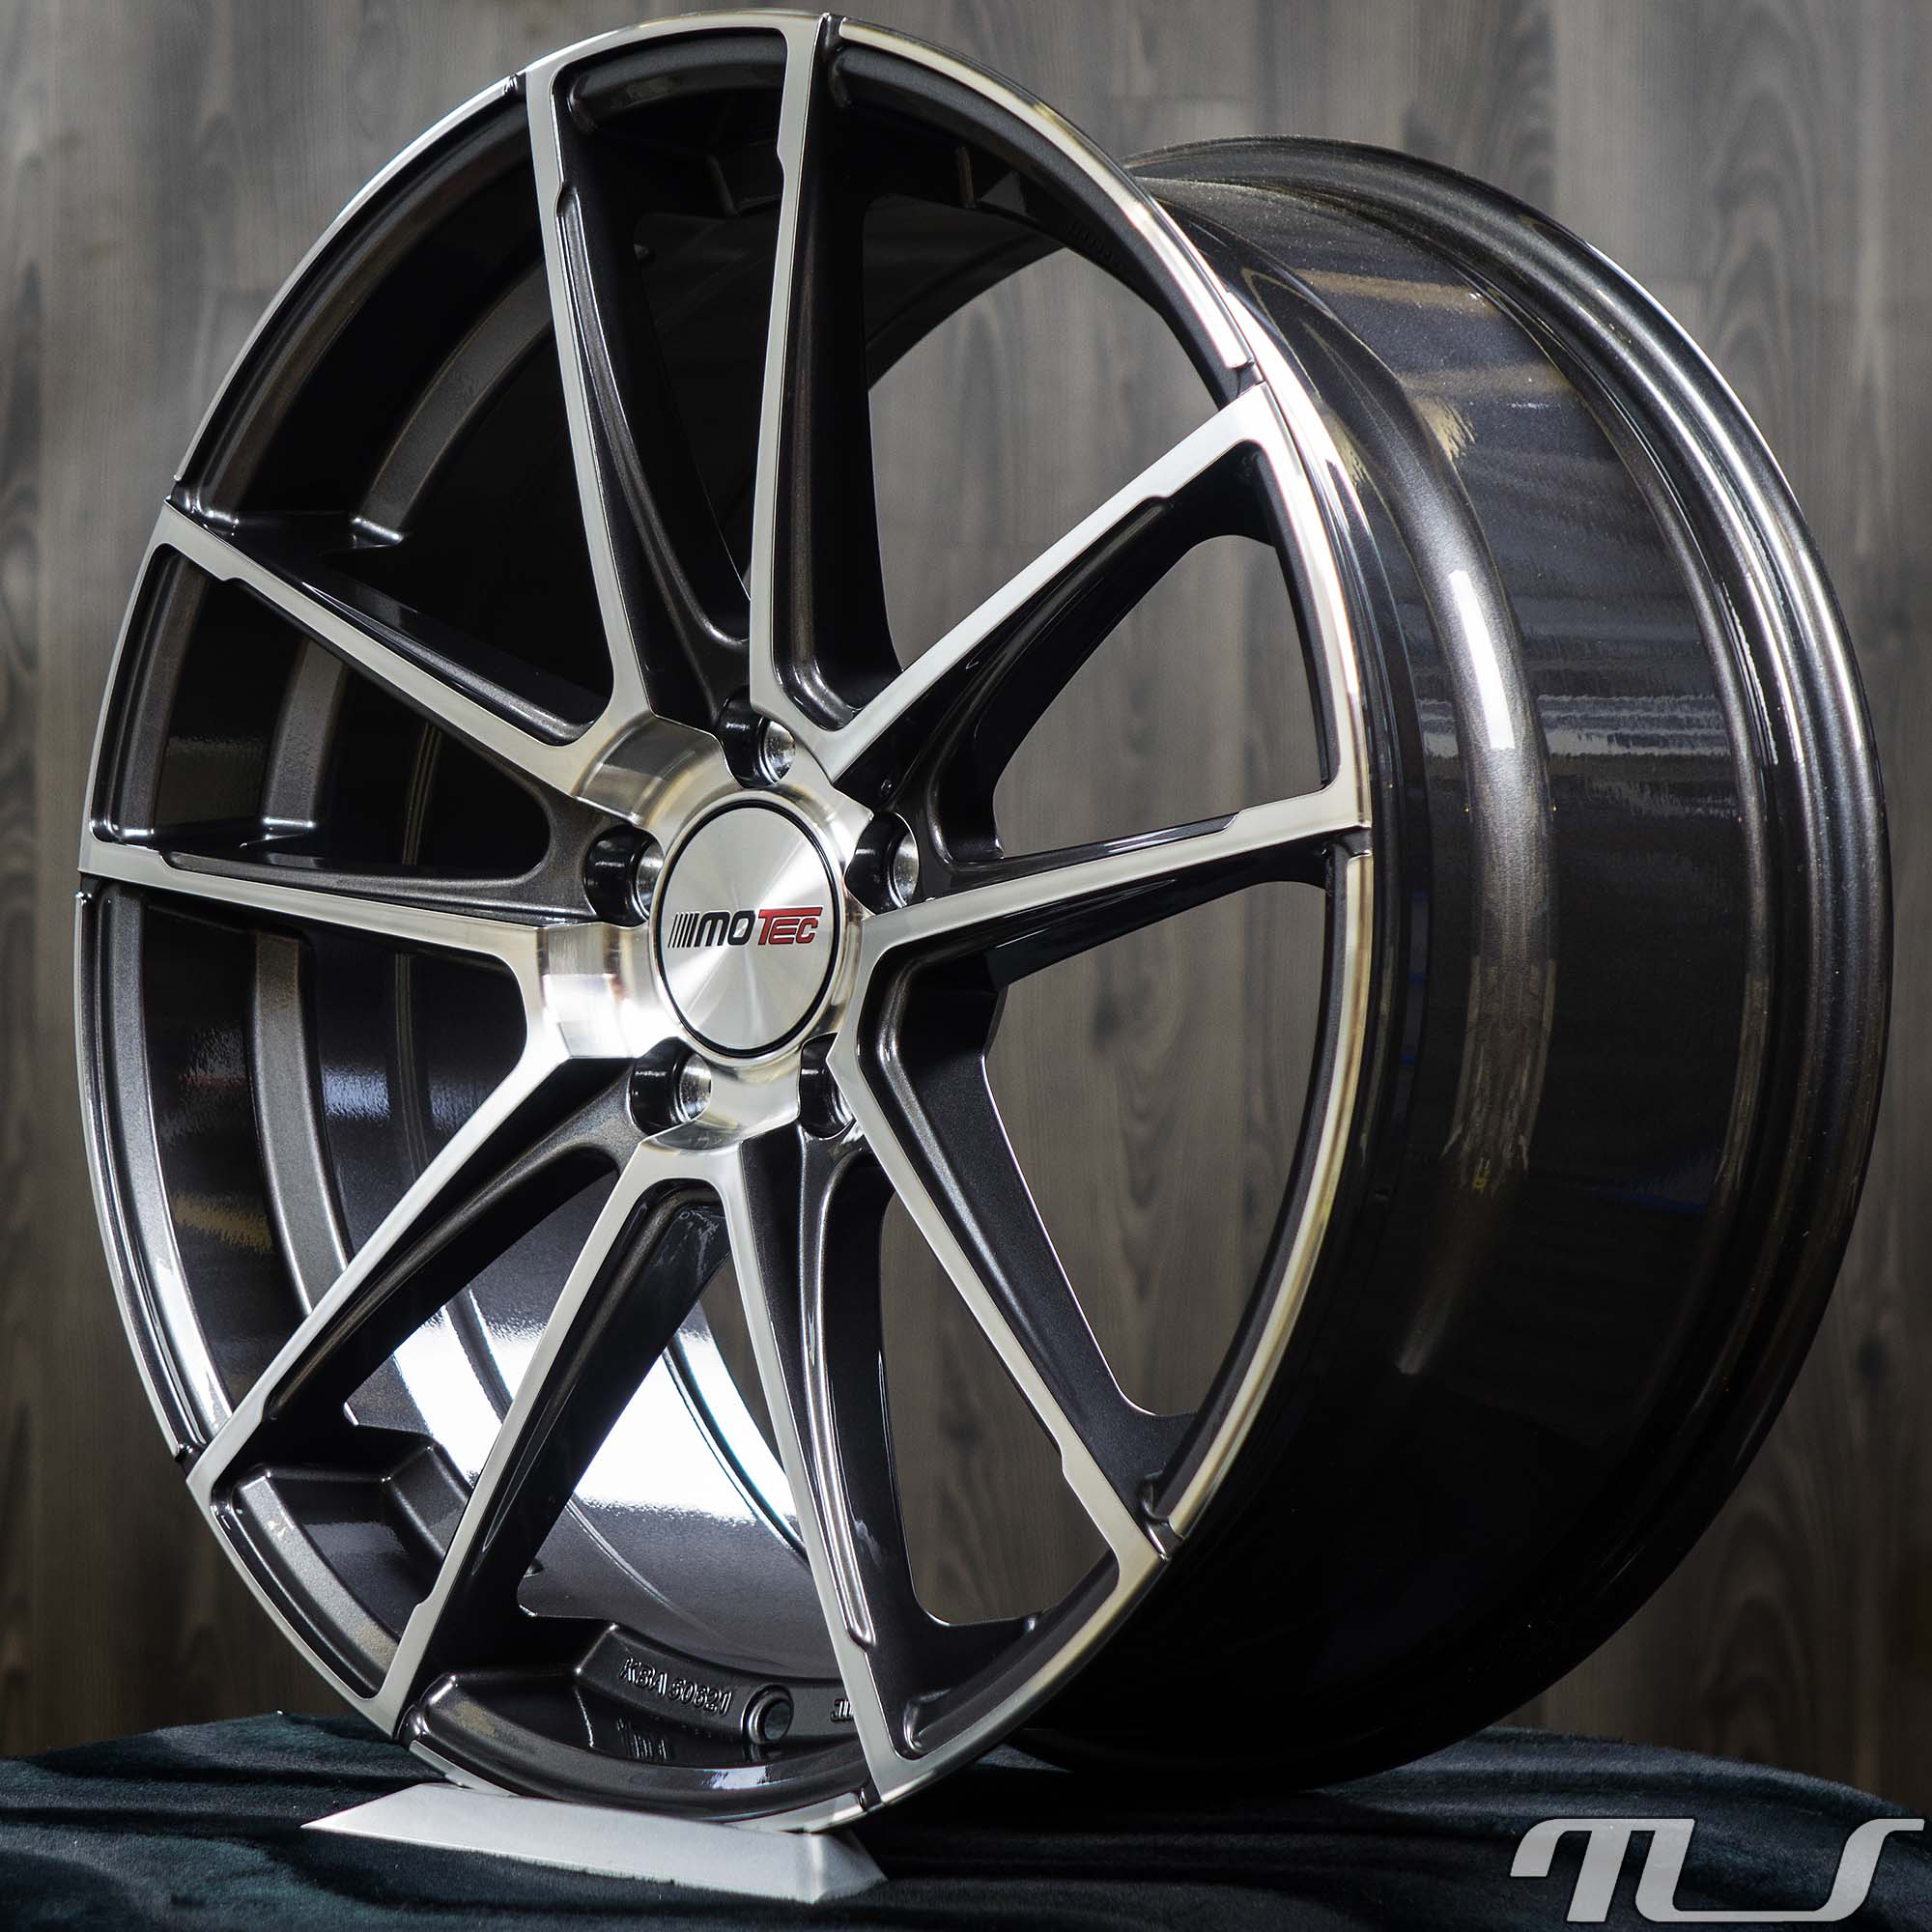 19 Inch Summer Tire For Mercedes Benz C E Cls Class W204 W205 W212 Amg Rims Third Party Wheels